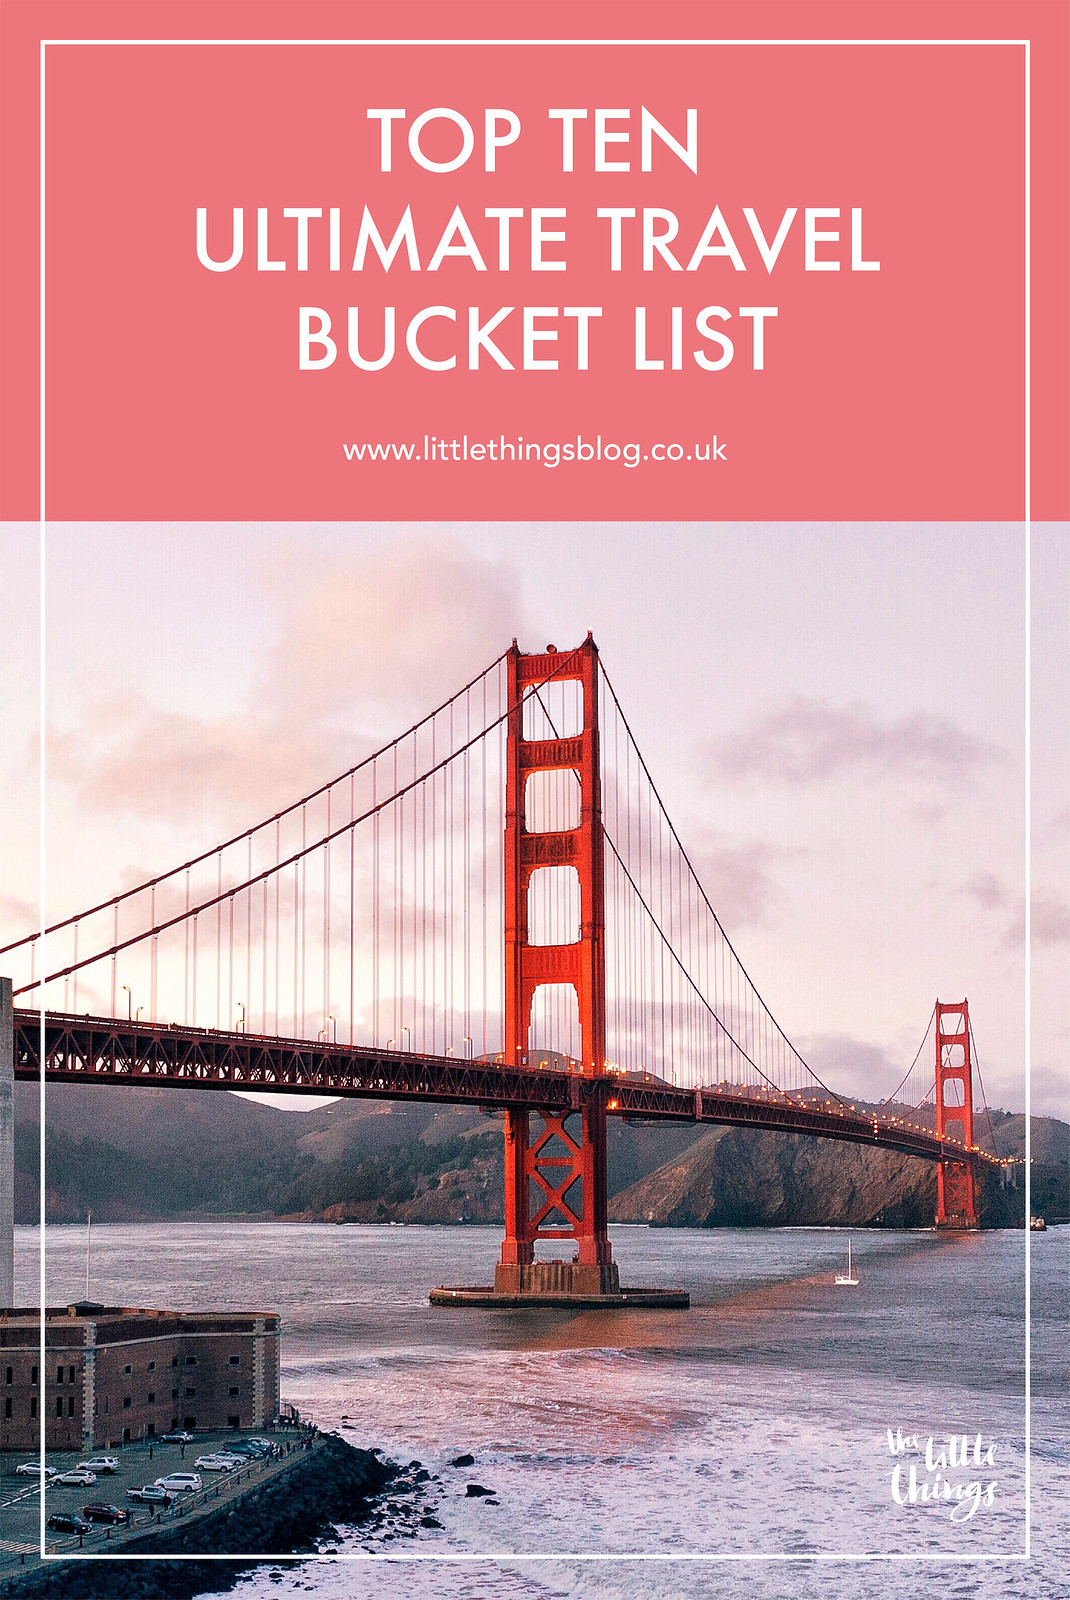 Top 10 ultimate travel bucket list travel blogger UK